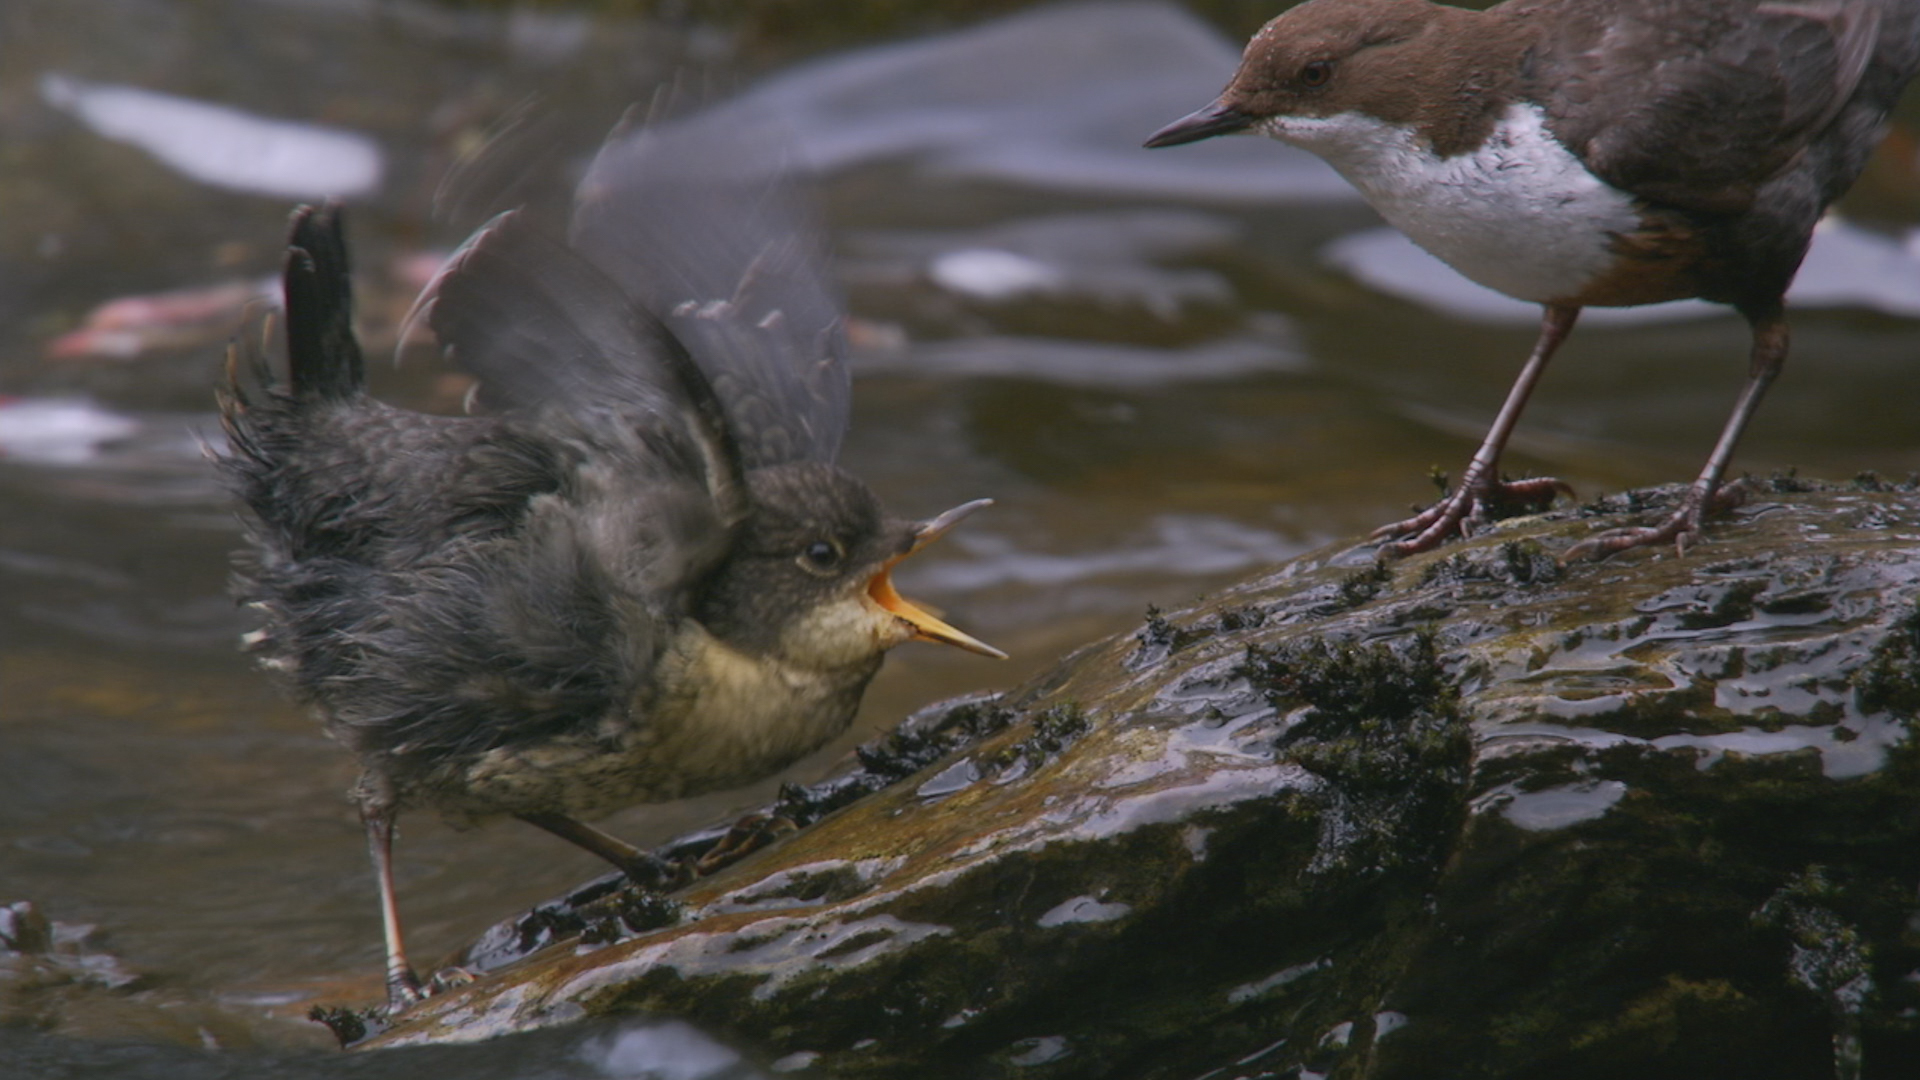 Dippers on the River Braan, which will feature in Highlands – Scotland's Wild Heart.